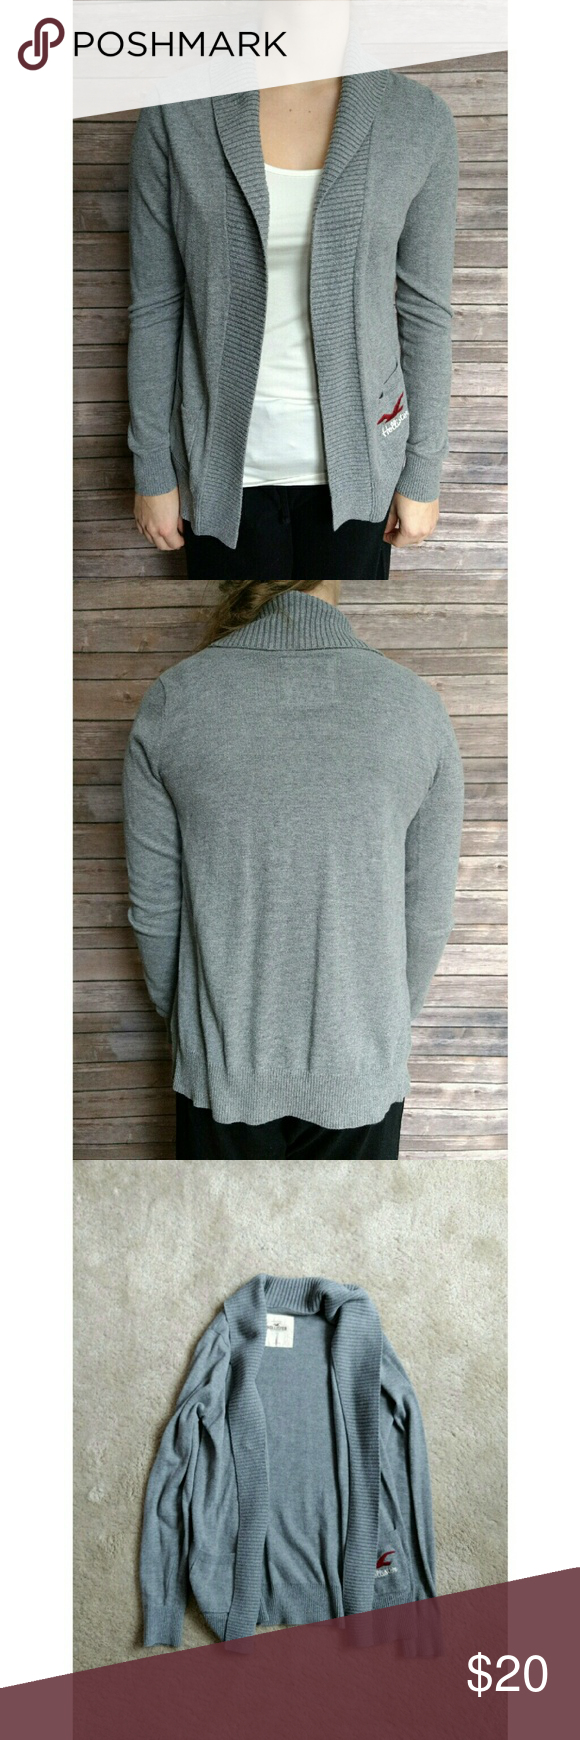 🆕 Hollister Cardigan An open cozy cardigan in a light grey color. It had two pockets in the front, one with the Hollister logo. No noticeable stains or damage, just some slight pilling from previous wear.   🚫No Trades 🚫No Holds Hollister Sweaters Cardigans